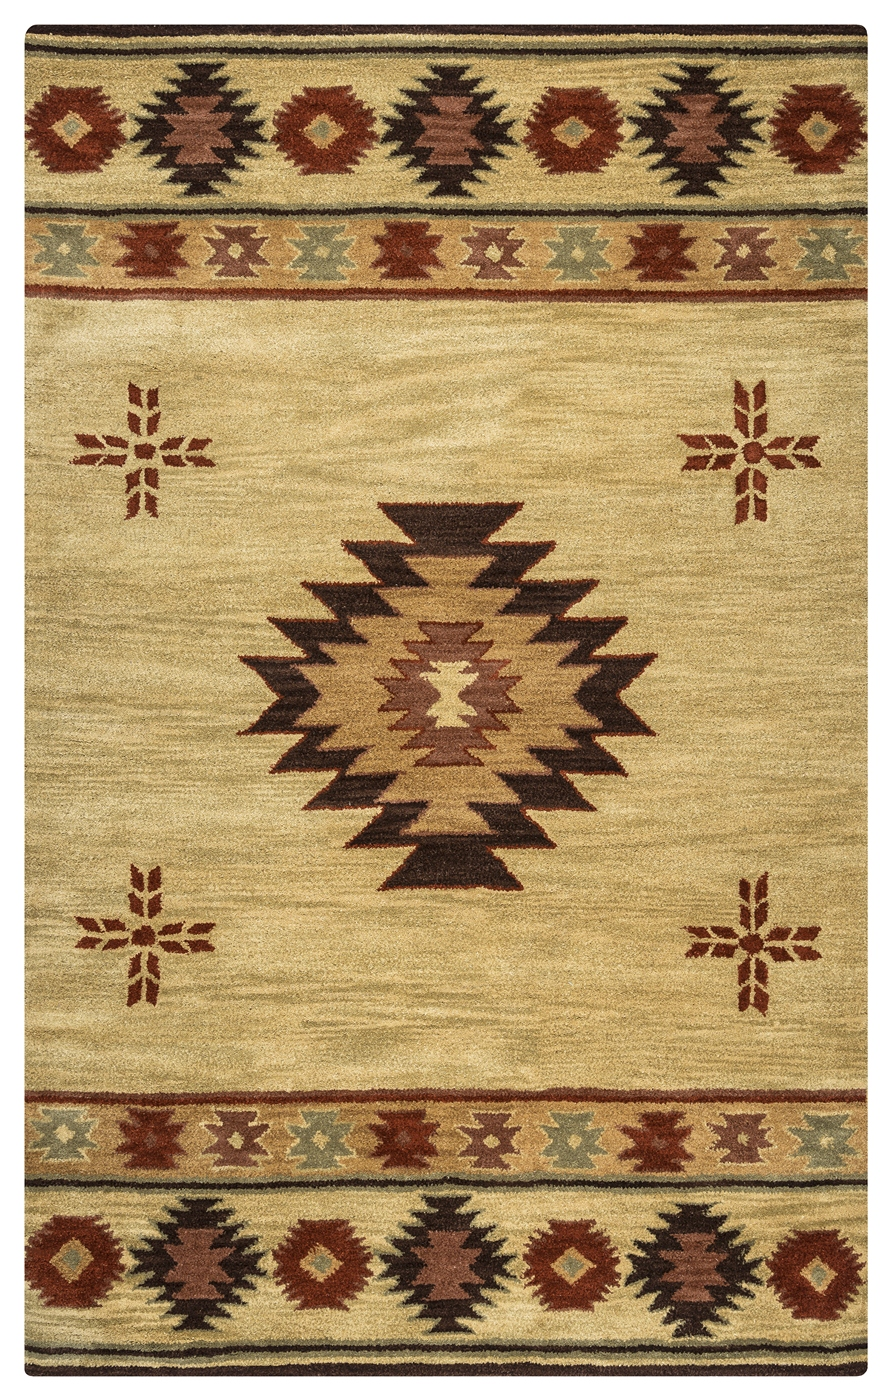 Southwest Indian Pattern Wool Area Rug In Khaki Brown Red